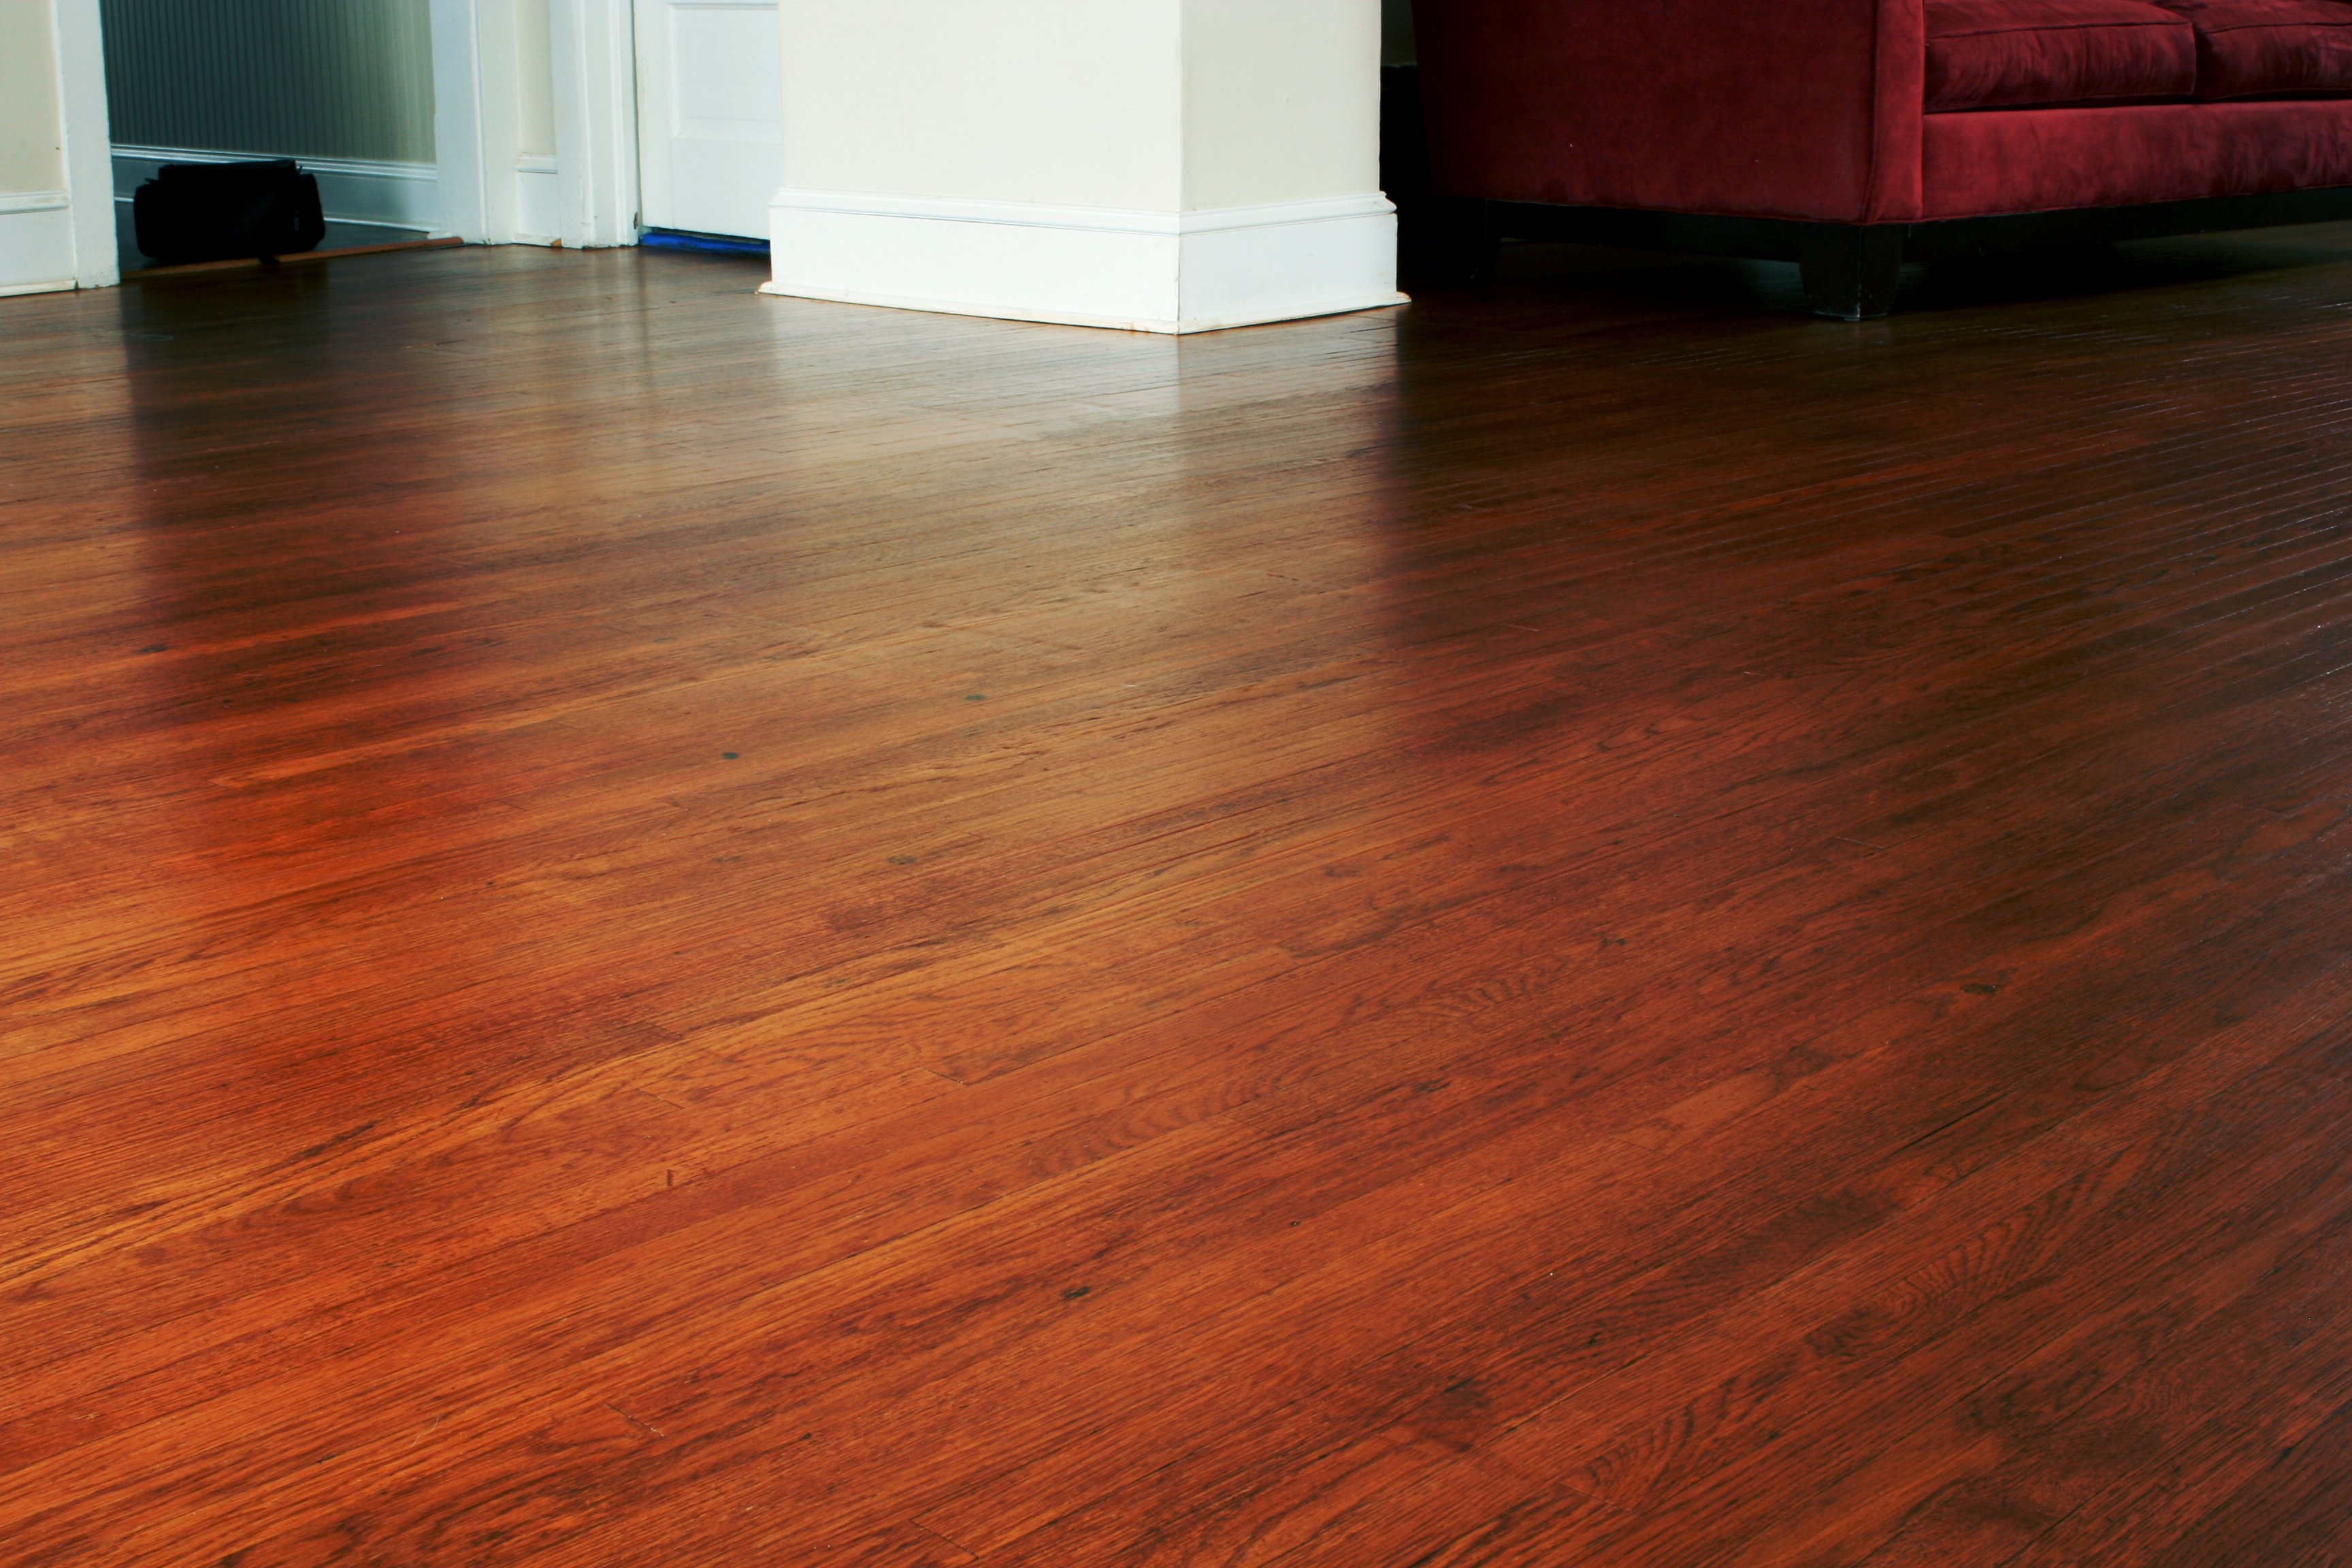 Kitchen Flooring Options Pros And Cons Engineered Hardwood Flooring Pros Cons Install Cost